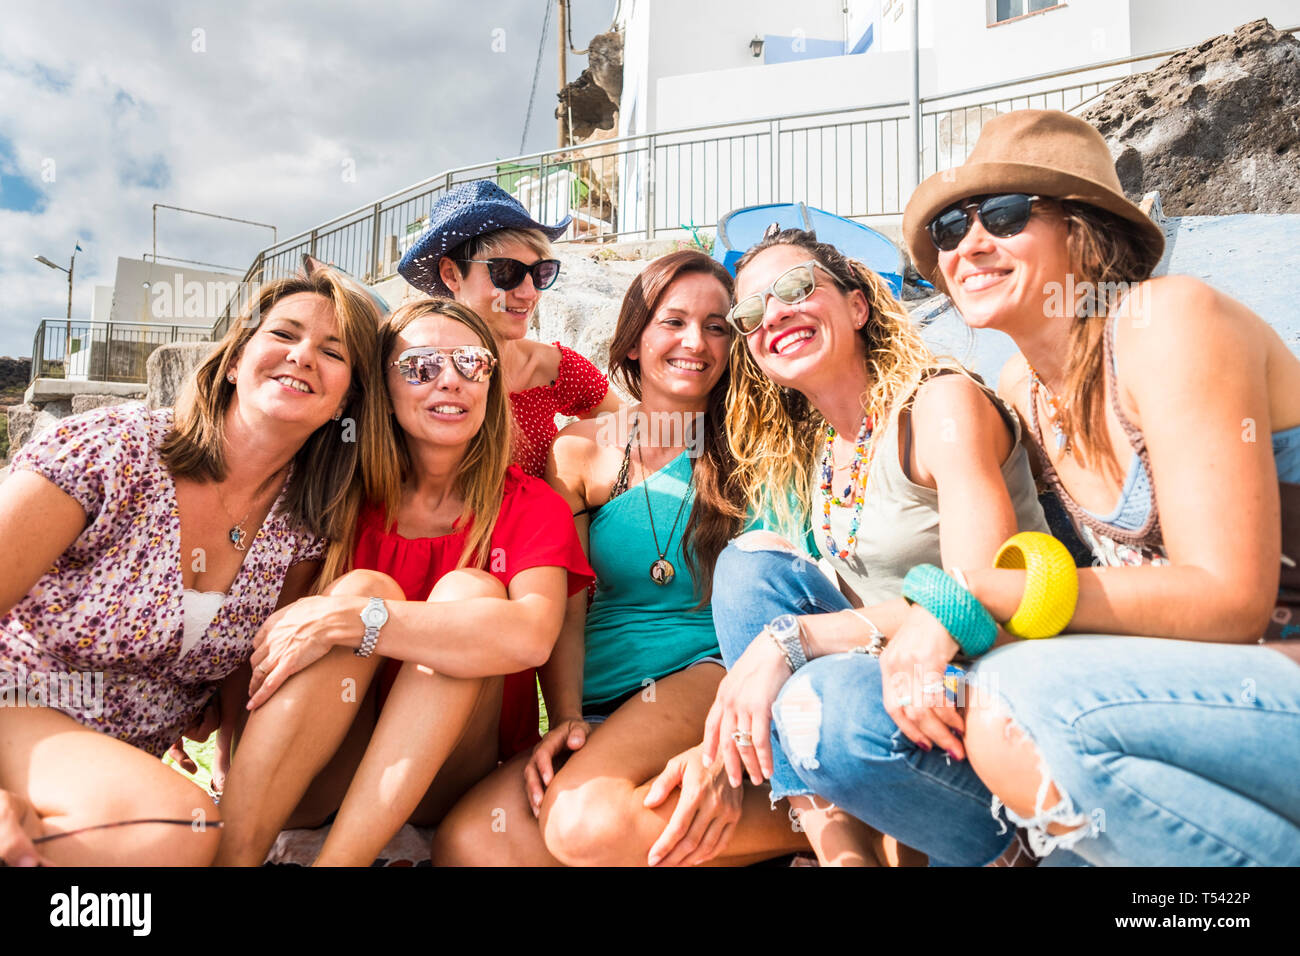 Group of cheerful and happy young women friends enjoy the day during summer vacation together in friendship - people have fun and laugh - beautiful la Stock Photo